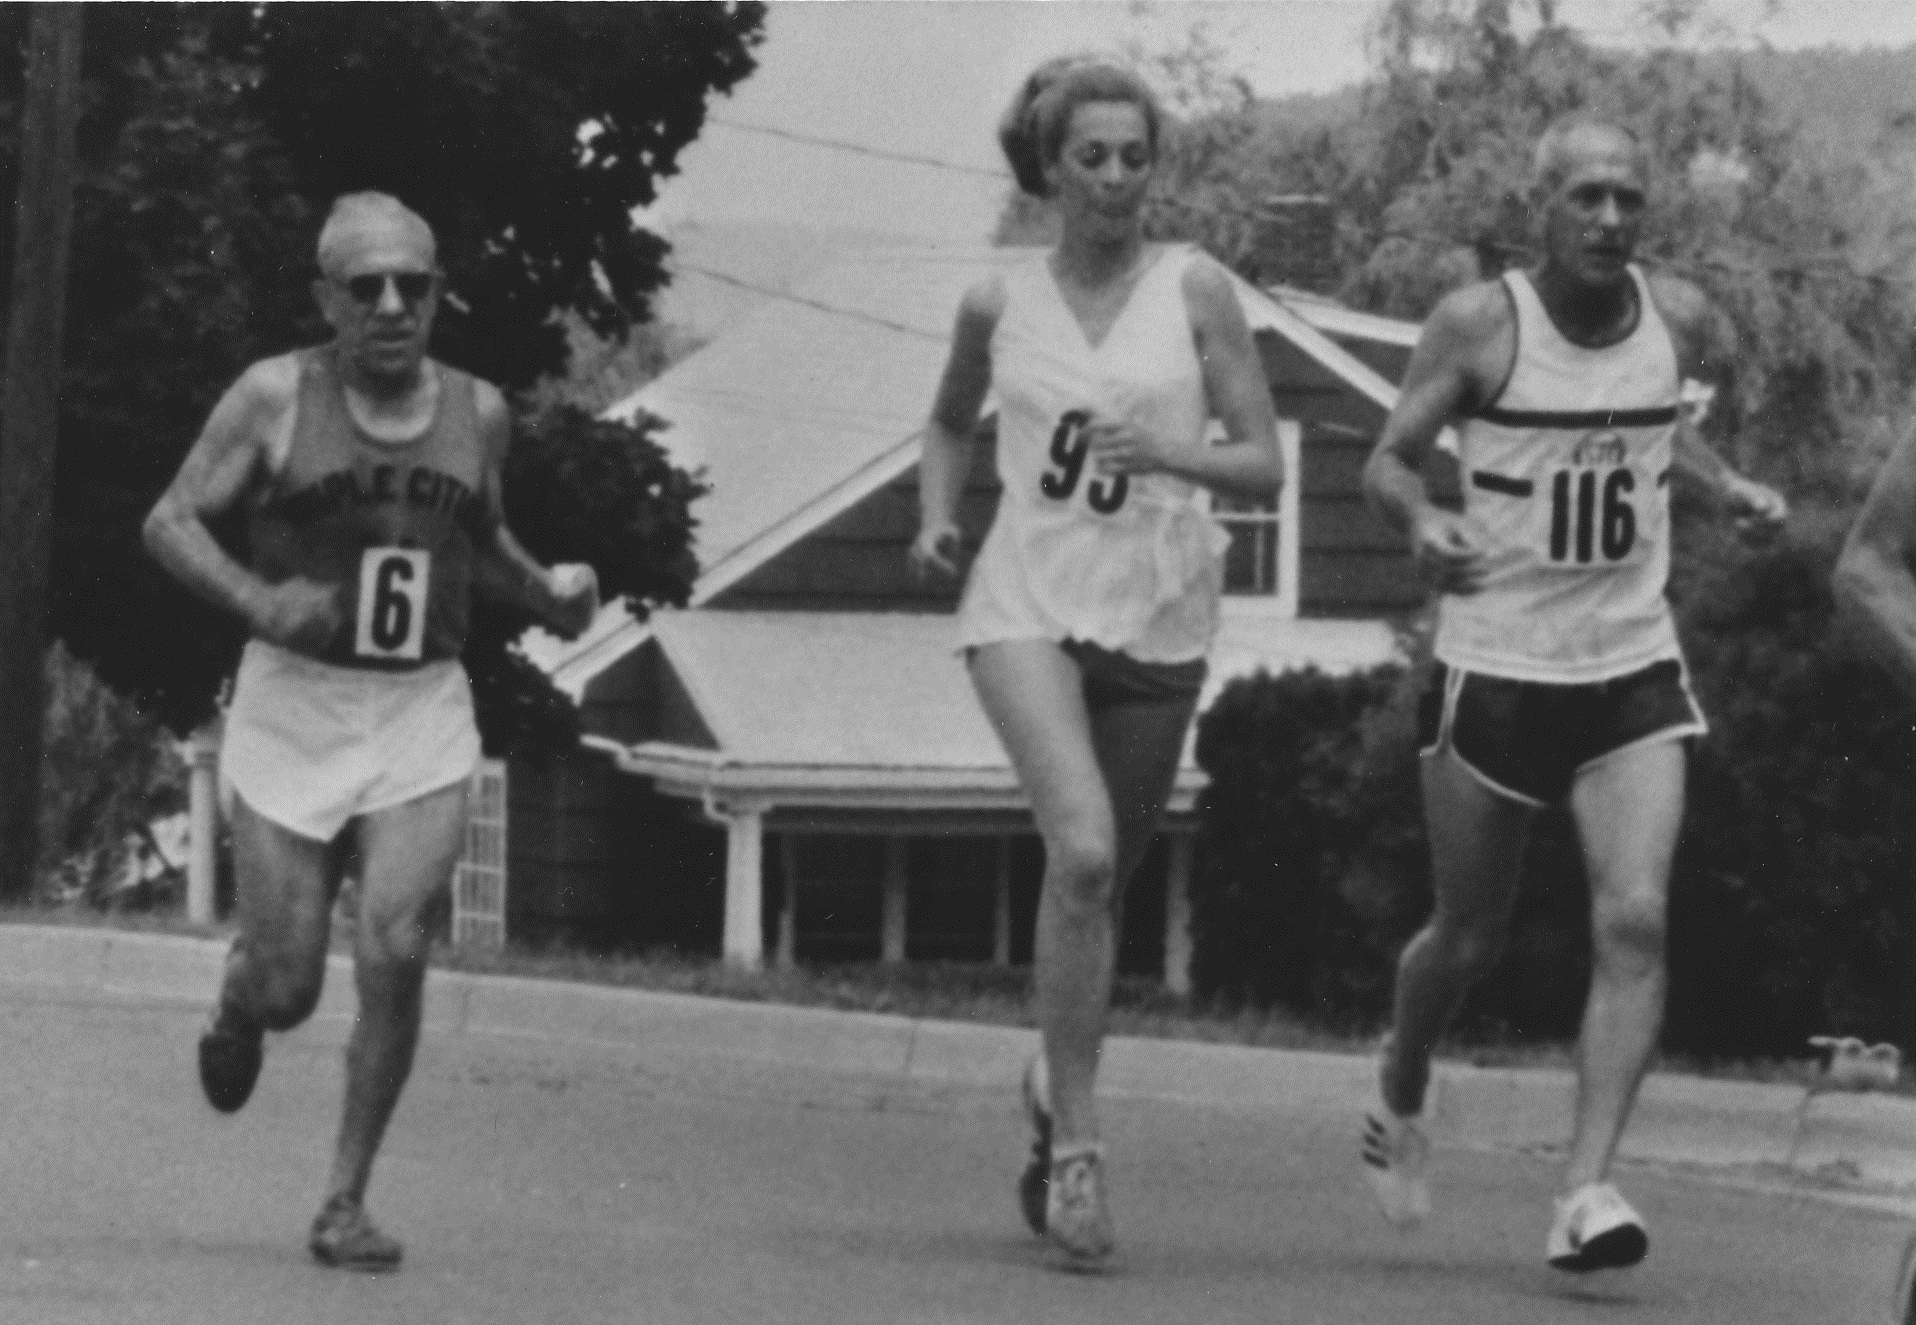 three people running